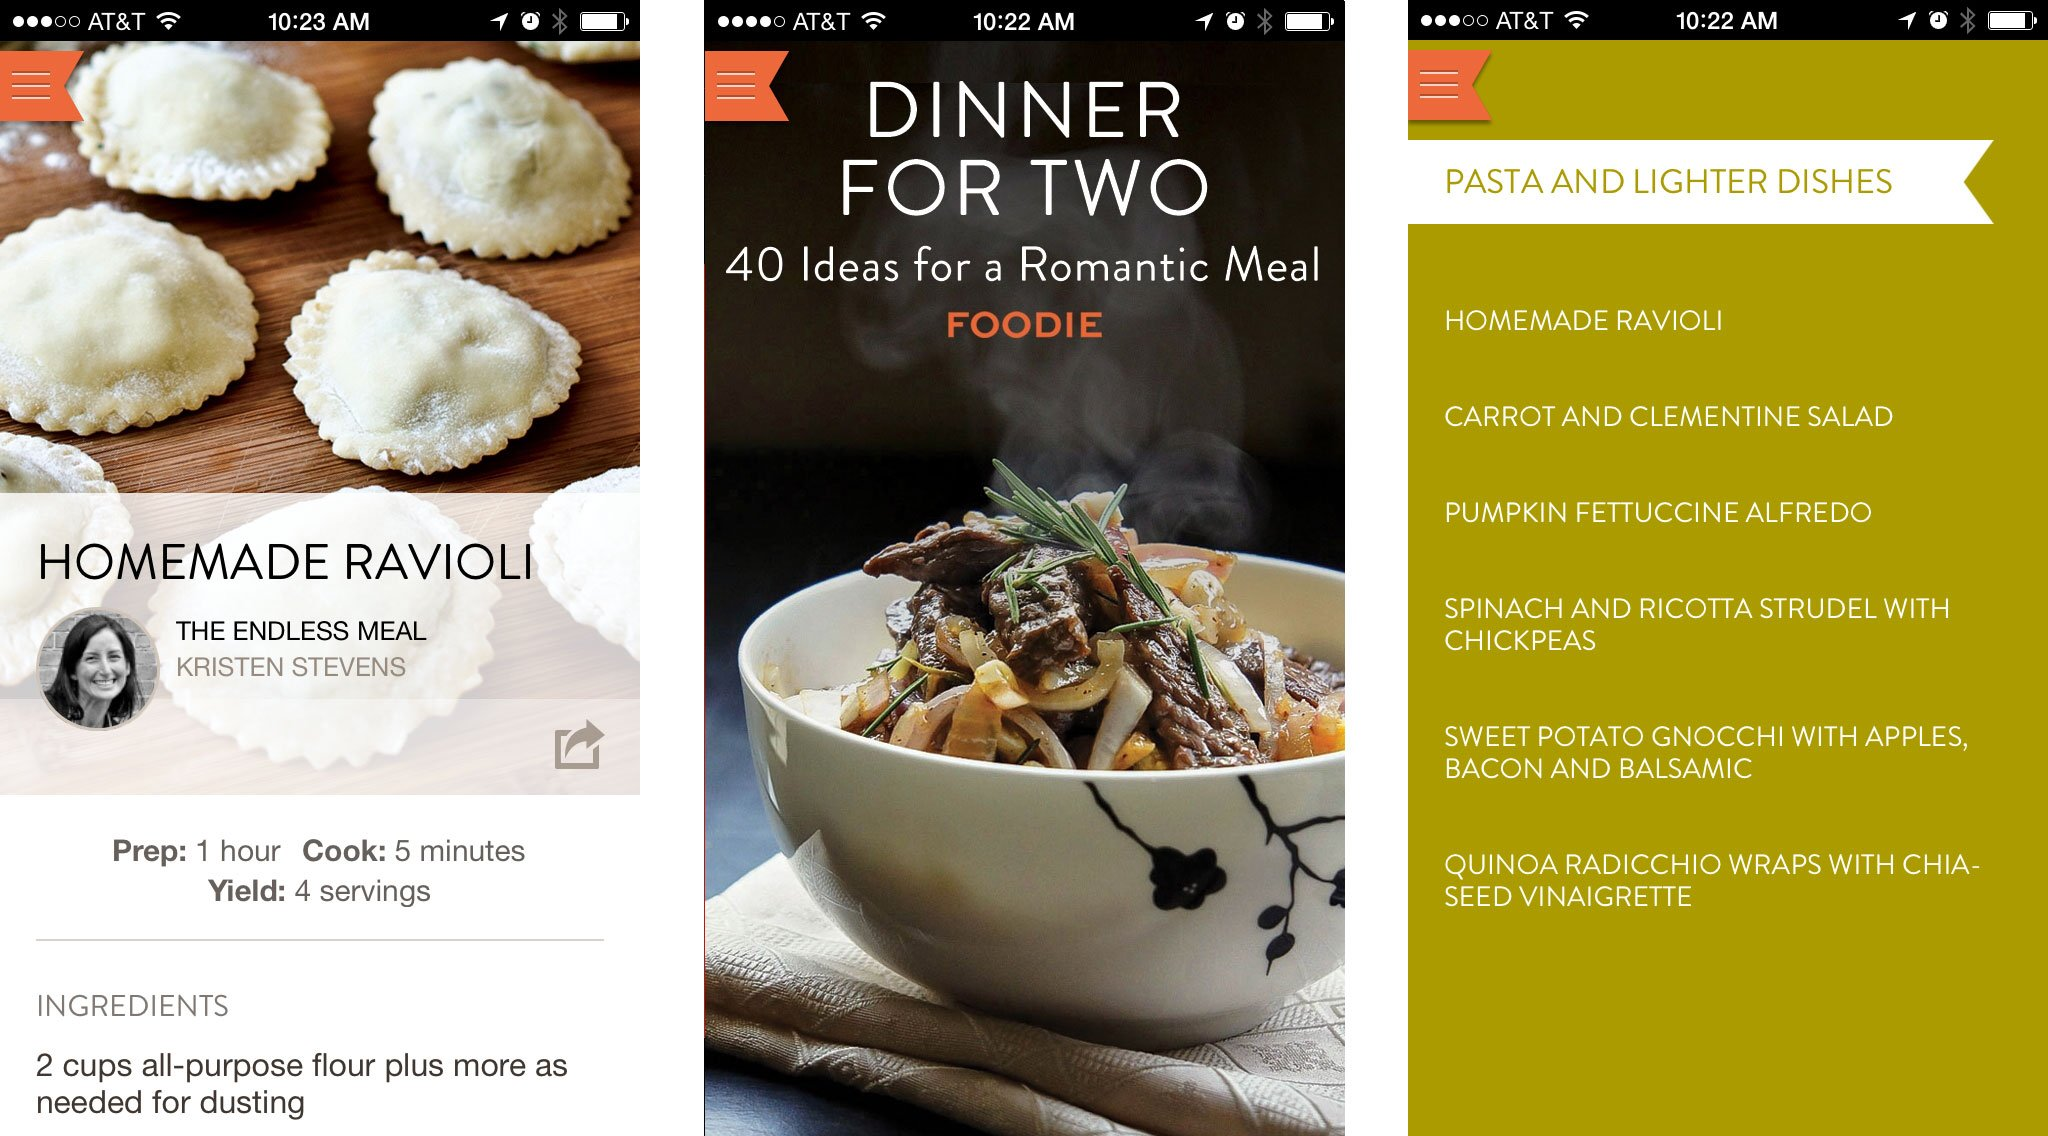 Best Valentine's Day apps for couples: Foodie